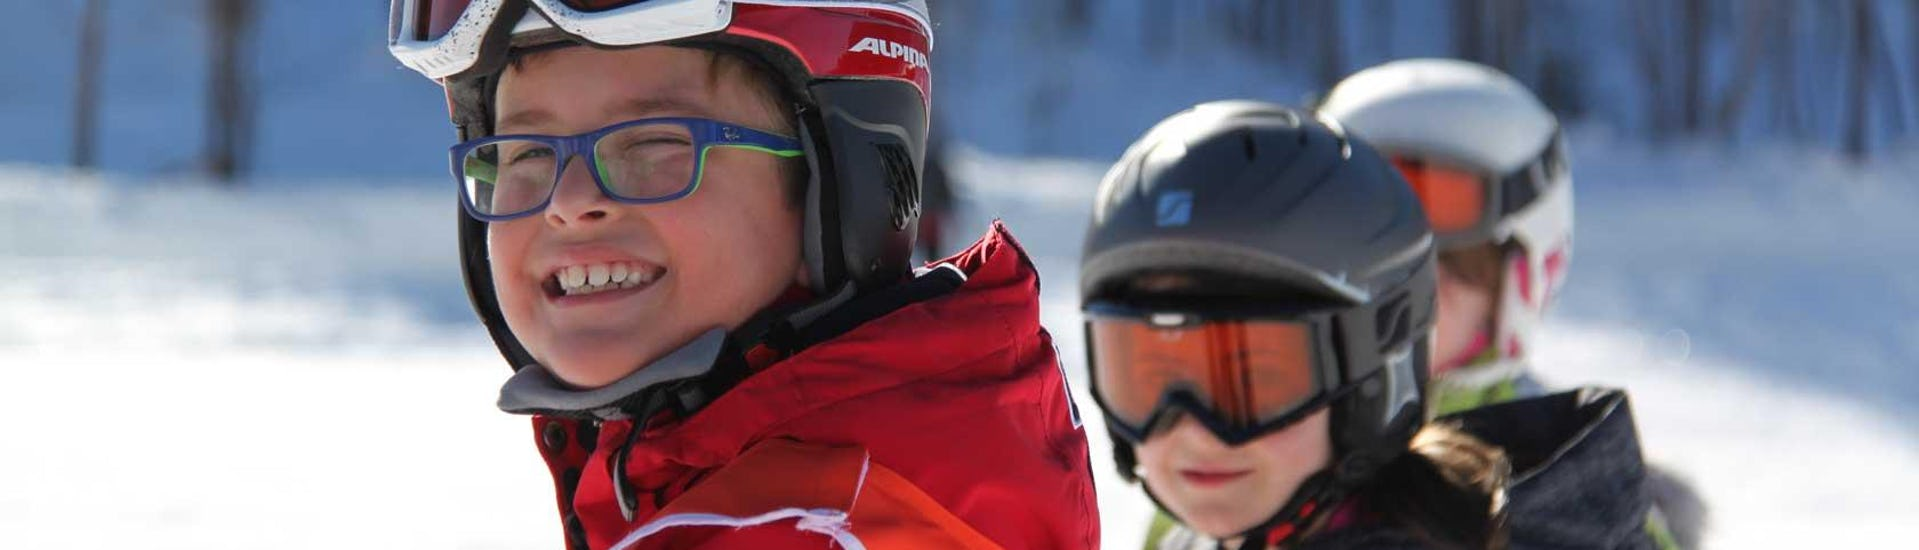 Ski Lessons for Kids (5-15 years) - Package - First Timer